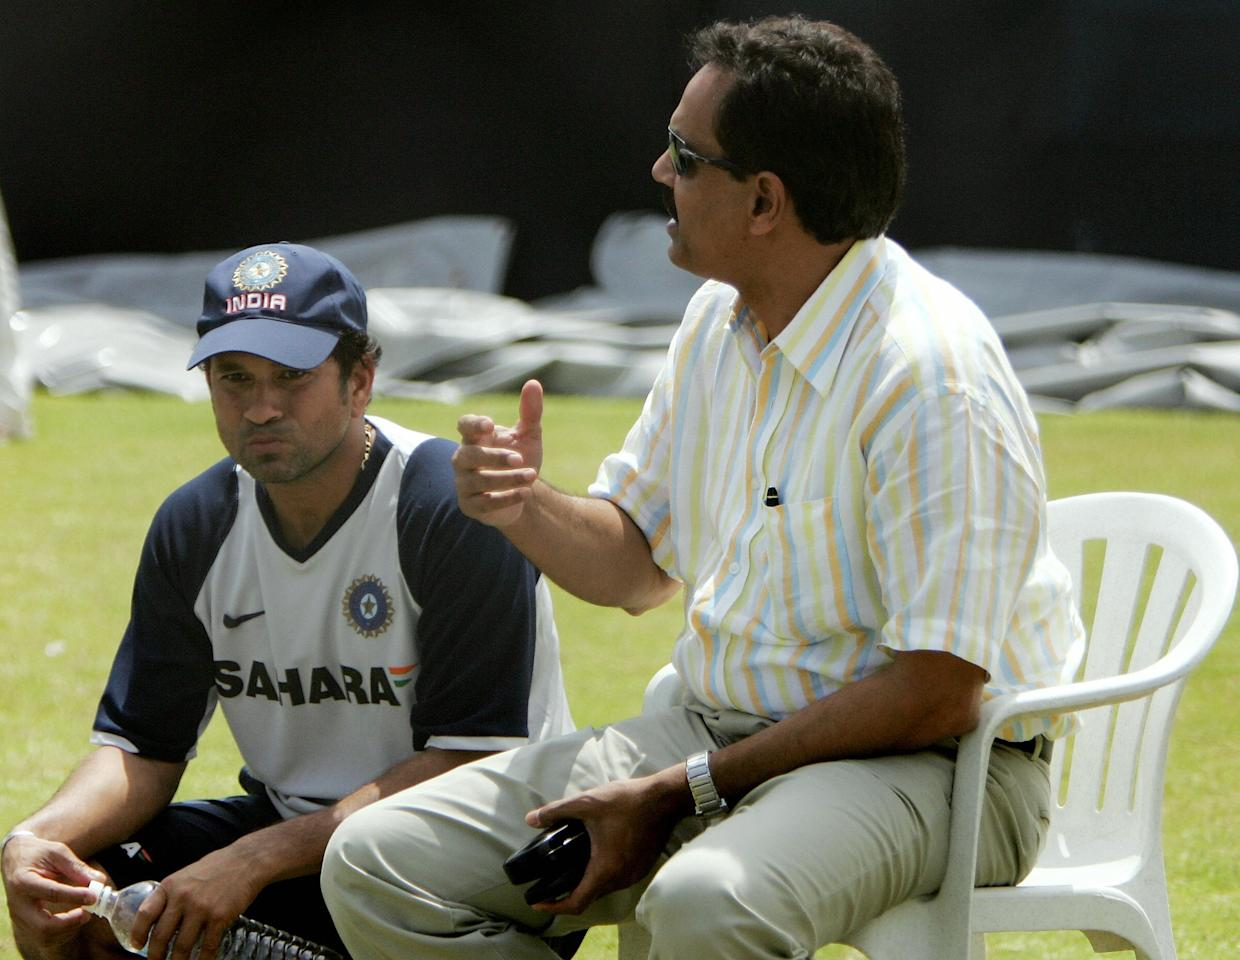 Indian cricketer Sachin Tendulkar (L) listens as Chairman of Indian Selectors Dilip Vengsarkar speaks during a training session at The Rajiv Gandhi International cricket stadium in Hyderabad, 04 October 2007, on the eve of the third one-day international cricket match between India and Australia.     Australia lead the seven match one-day series 1-0 with first match being abandoned by rain   AFP PHOTO/ MANAN VATSYAYANA. (Photo credit should read MANAN VATSYAYANA/AFP/Getty Images)